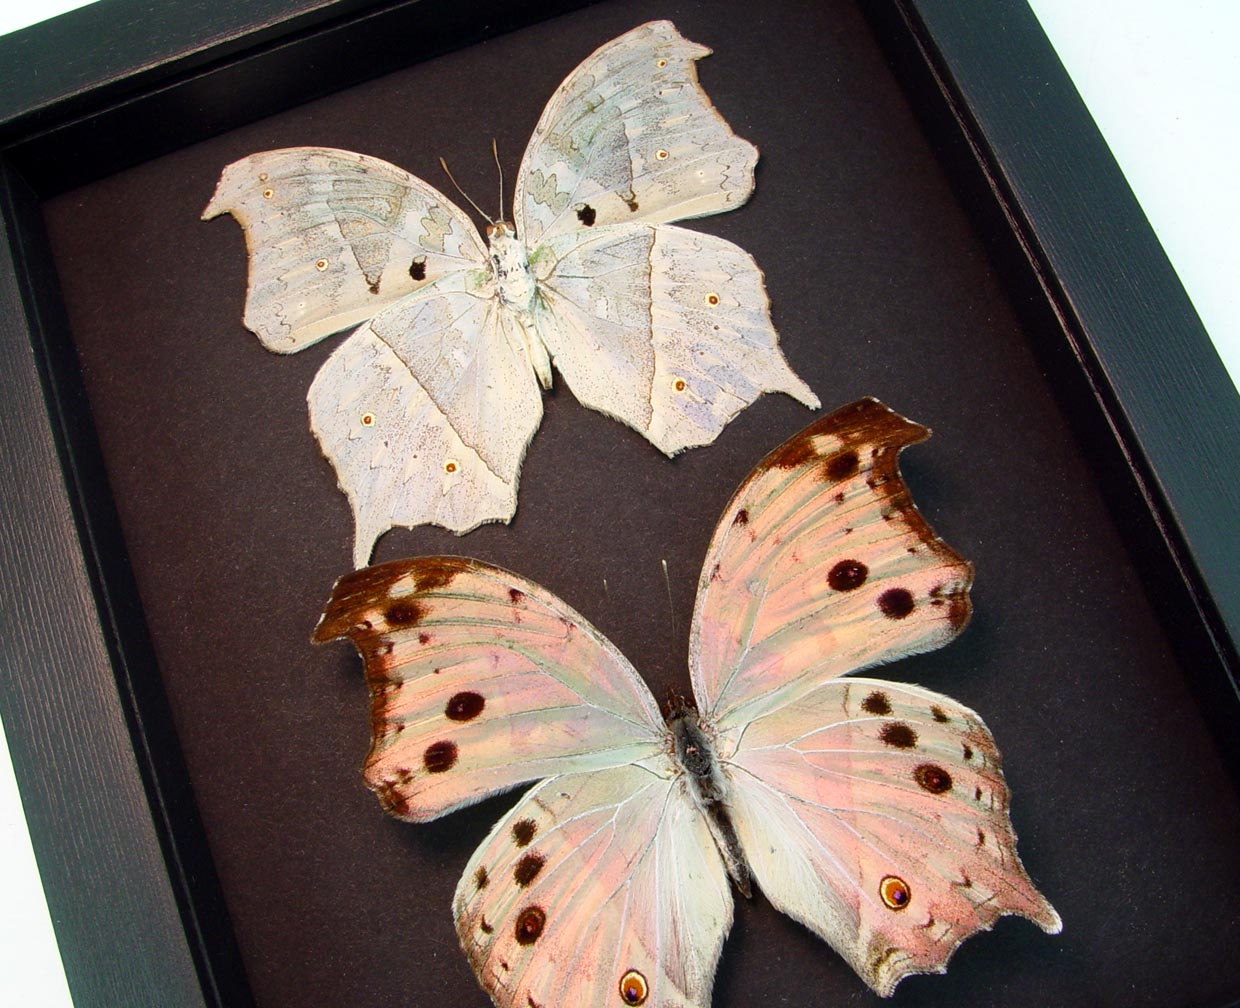 Salamis parhassus Pair Mother Of Pearl Butterflies Moonlight Display ooak